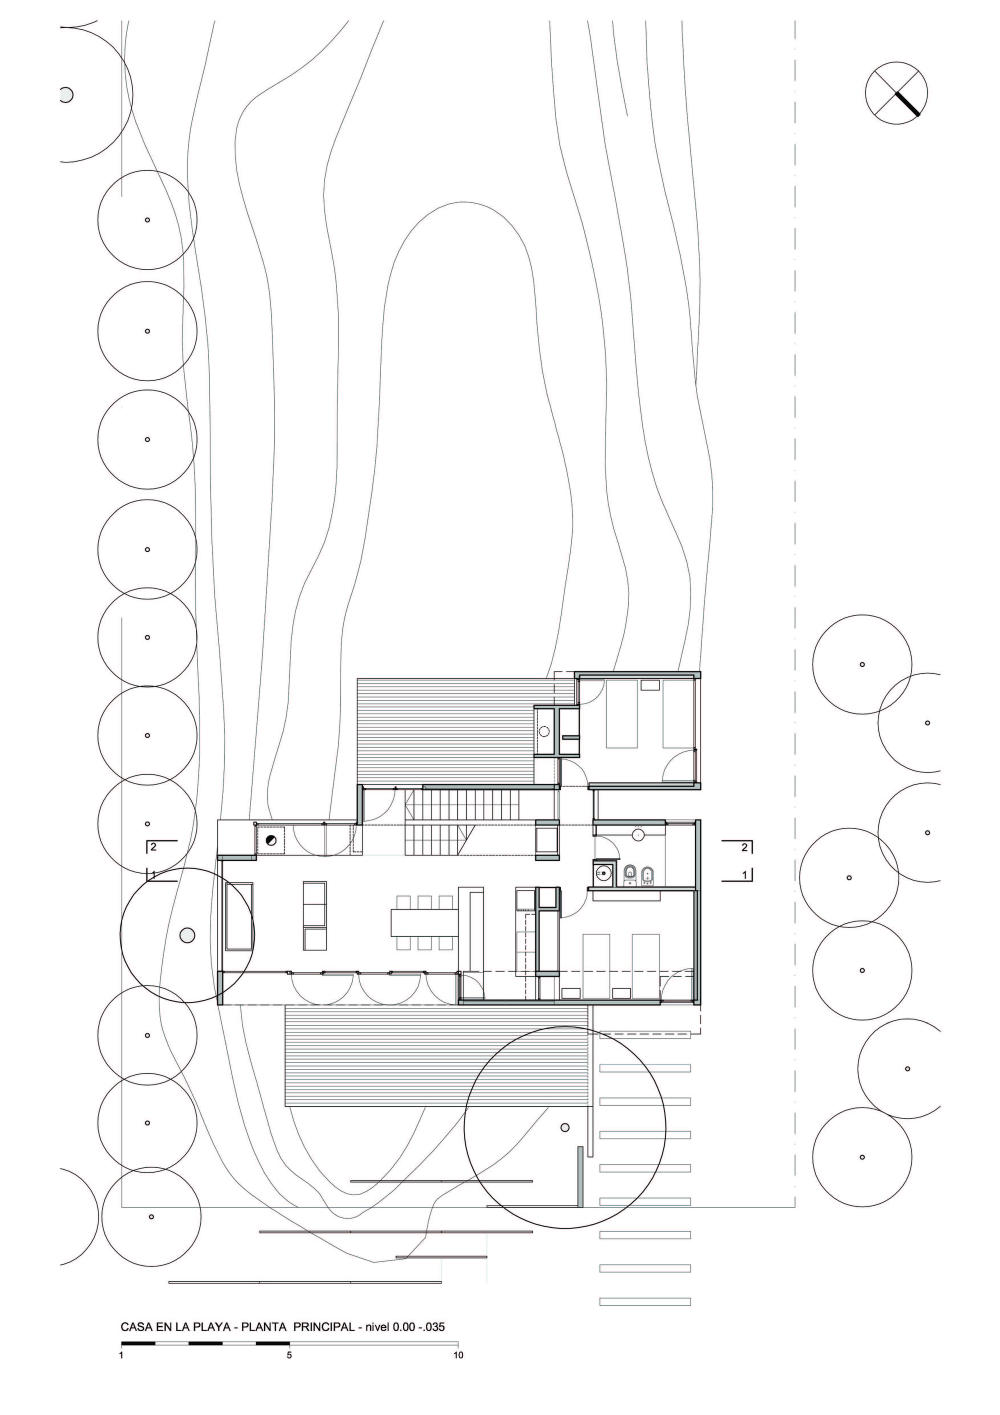 529d369ae8e44e0120000045_casa-en-la-playa-bak-architects_floor_plan_-1--1000x1415